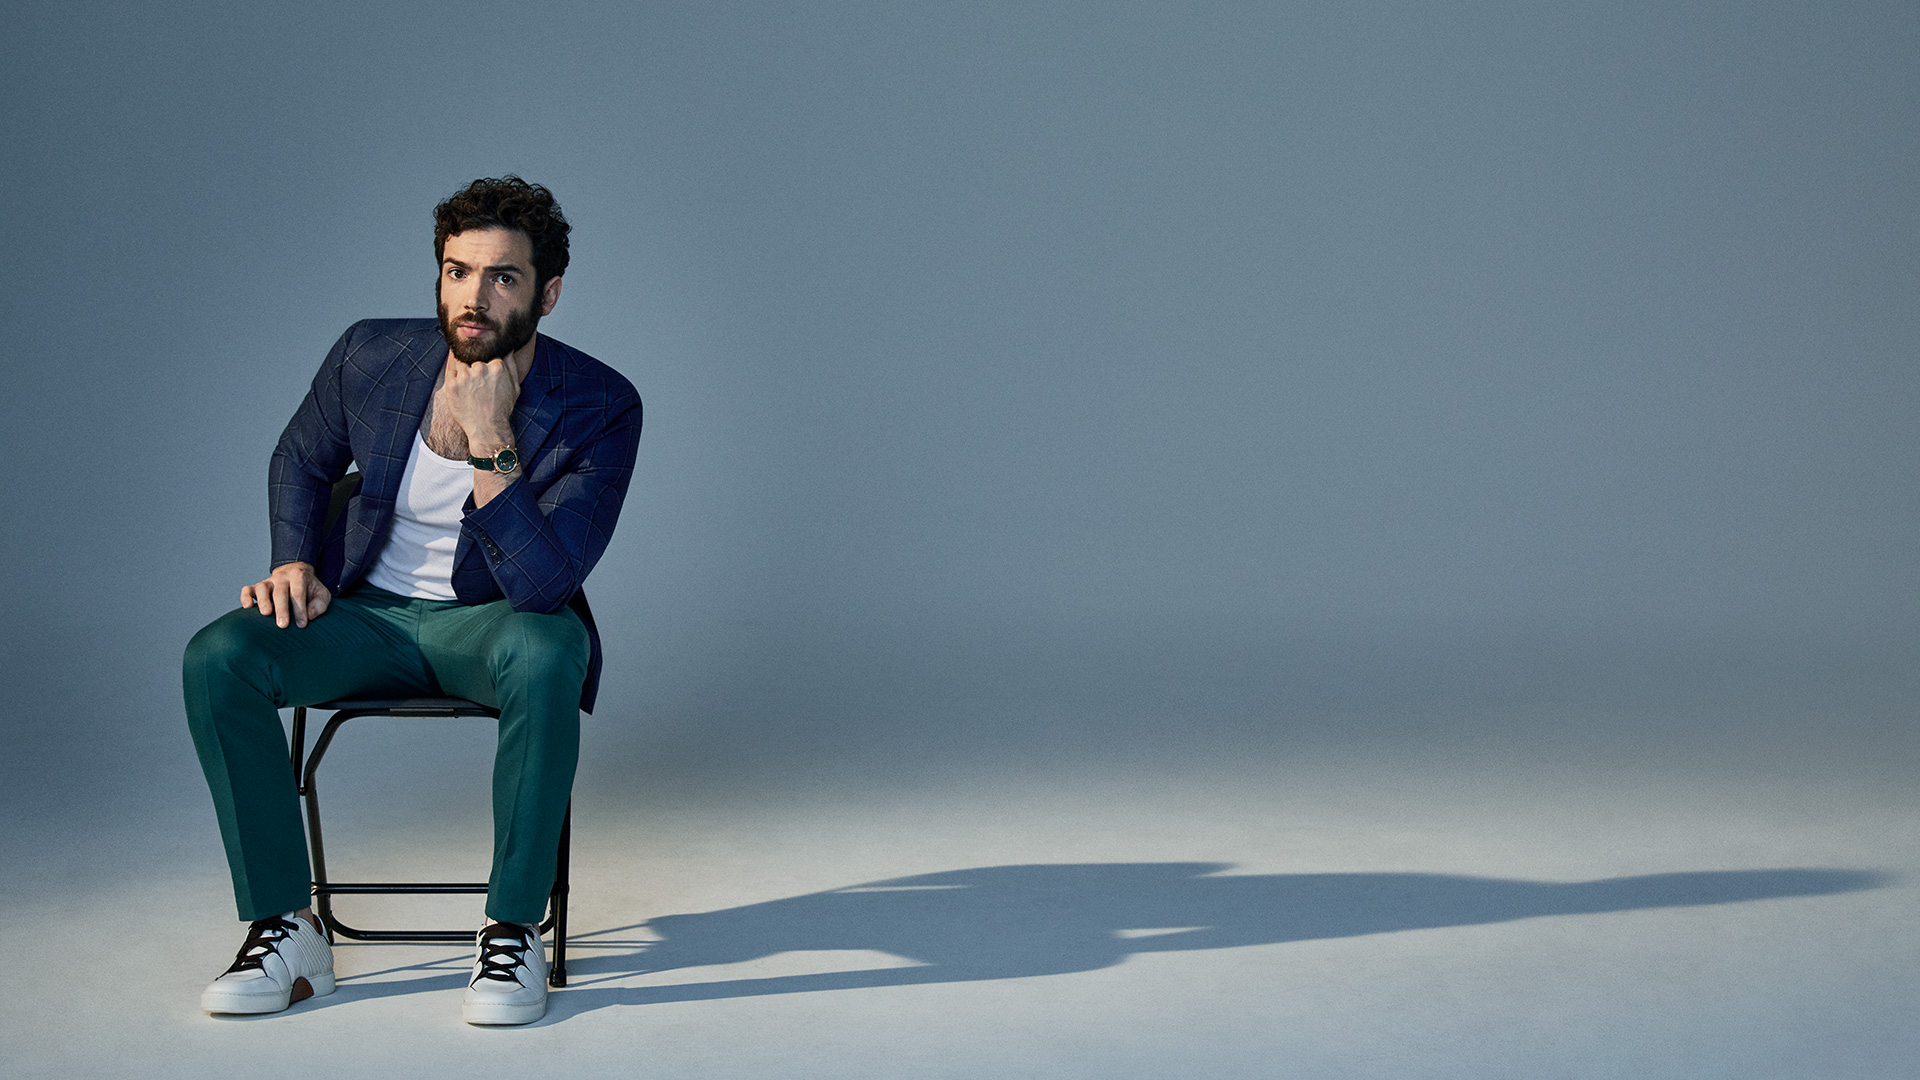 Ethan Peck learned the importance of punctuality early